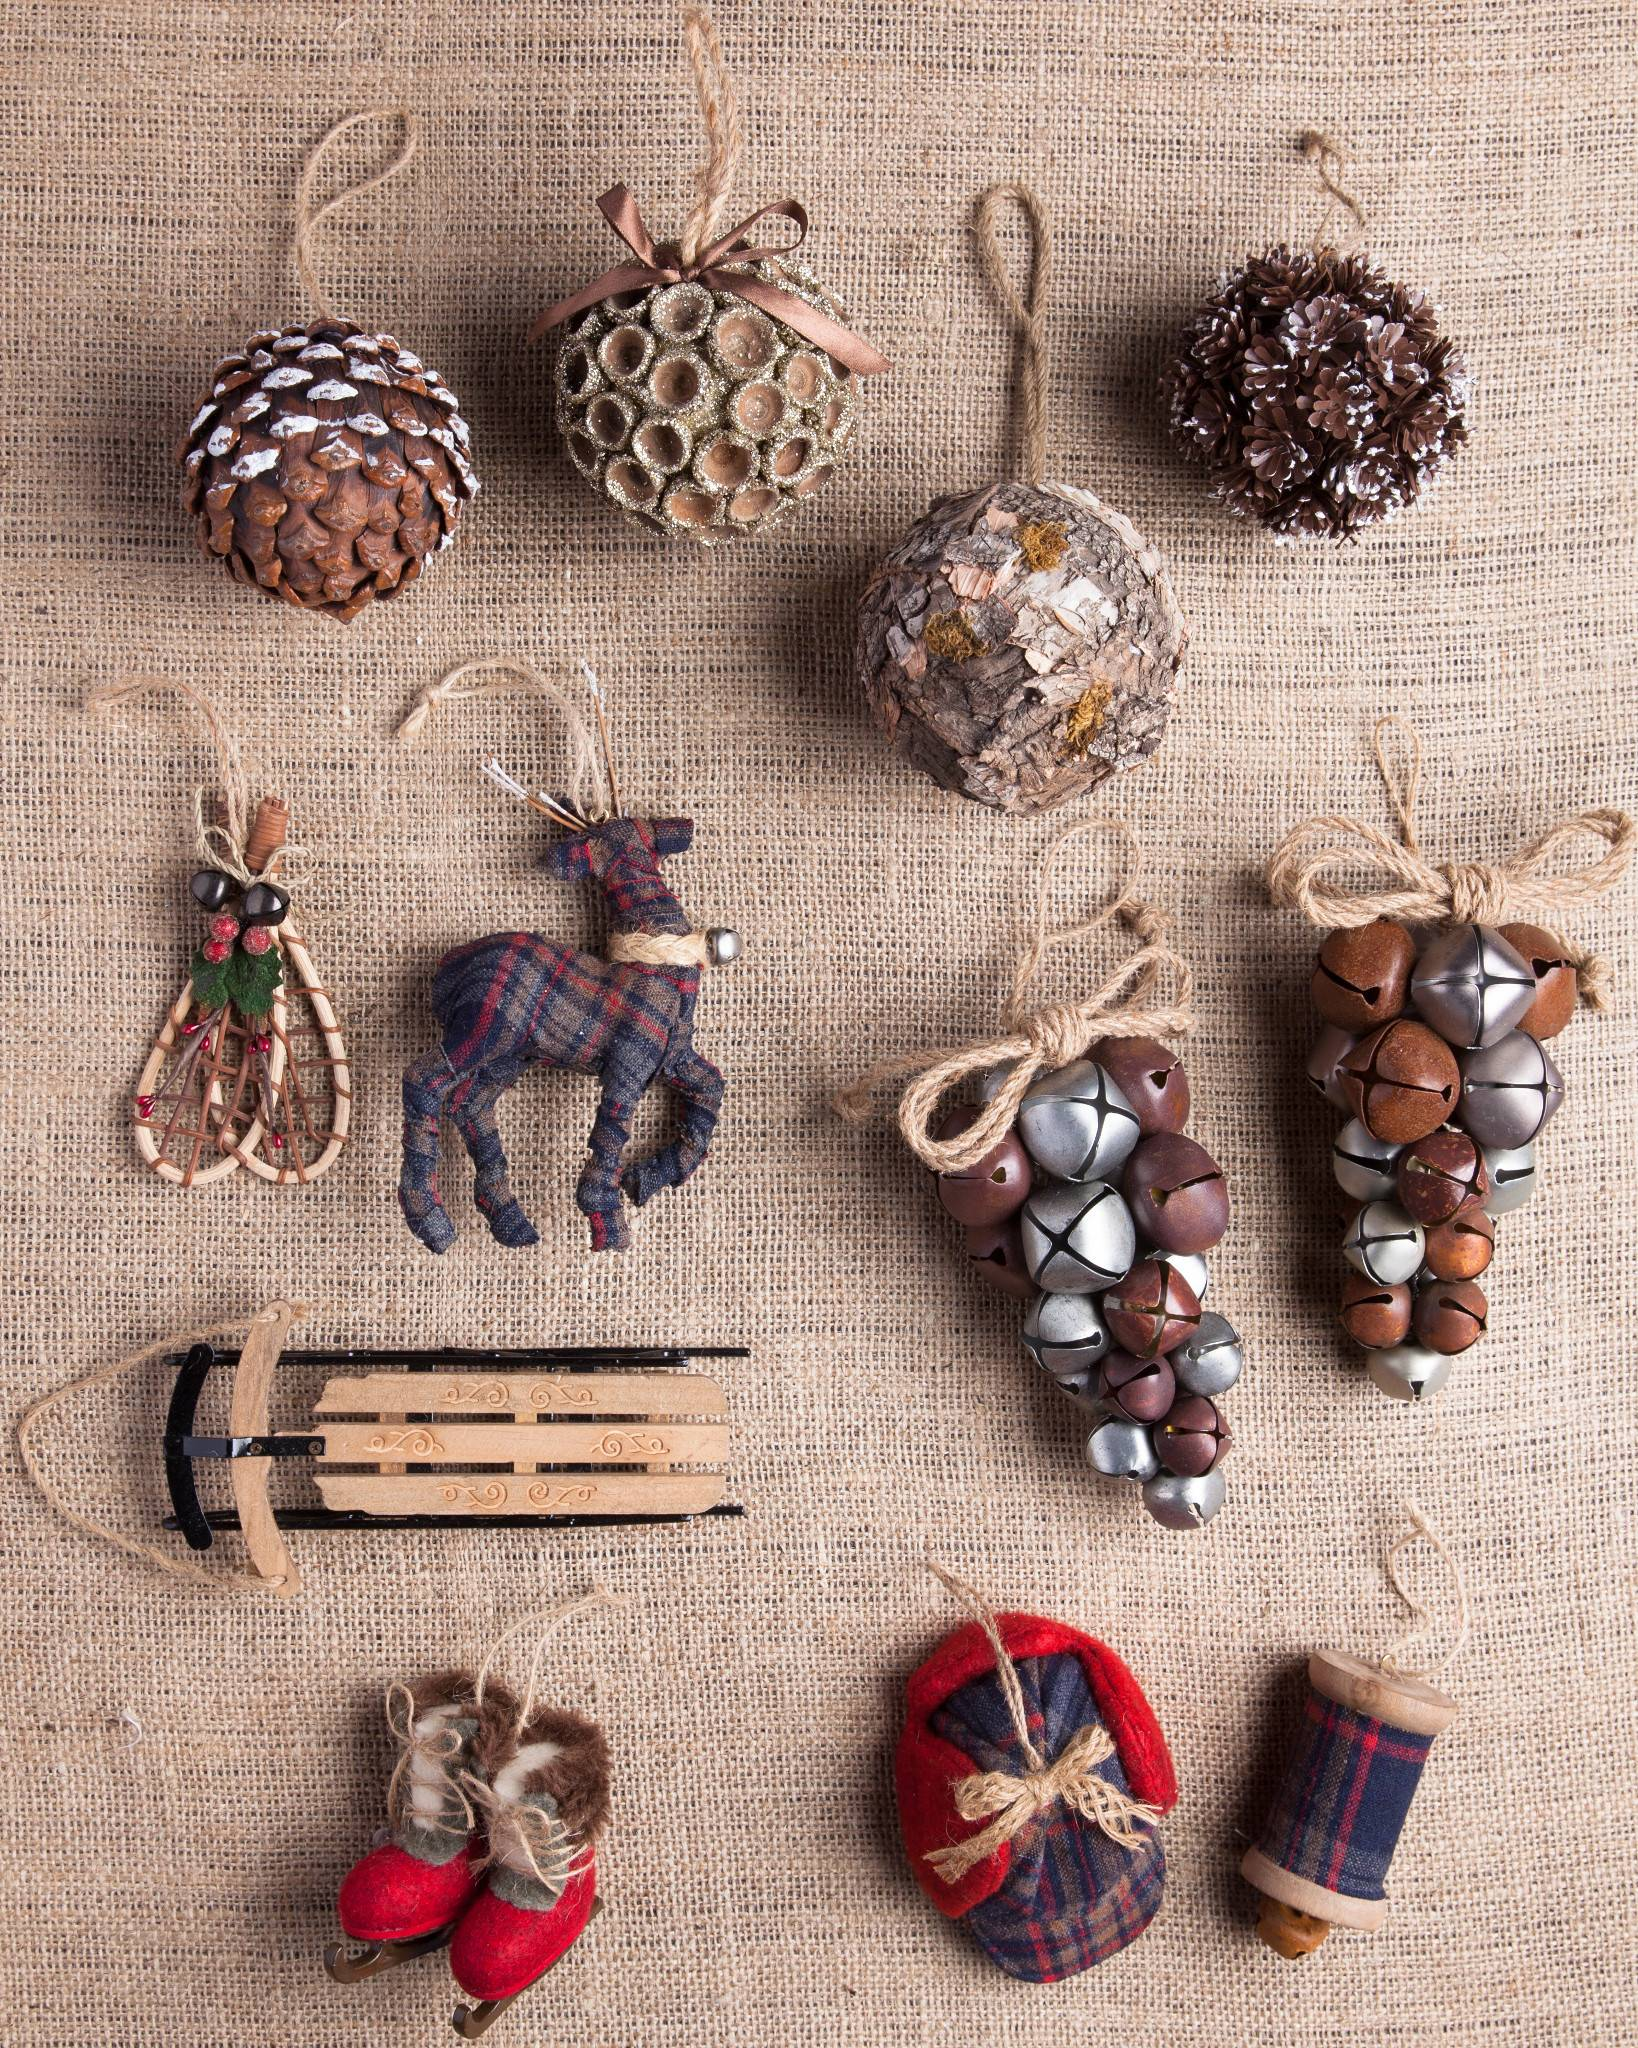 Farmhouse Christmas Mixed Materials Ornament Set 12 Pieces By Balsam Hill